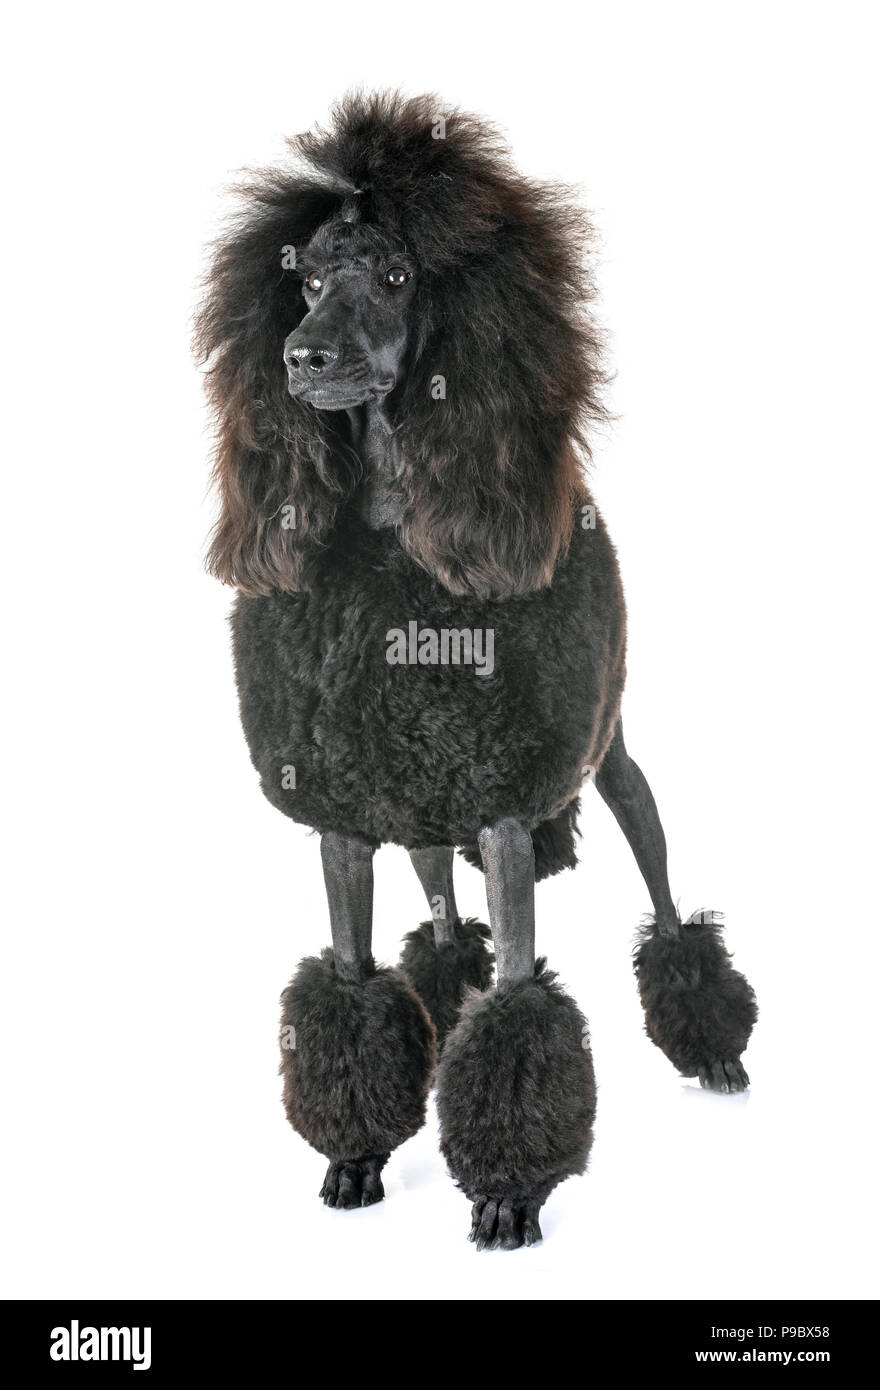 Standard Poodle Puppy Stock Photos & Standard Poodle Puppy Stock